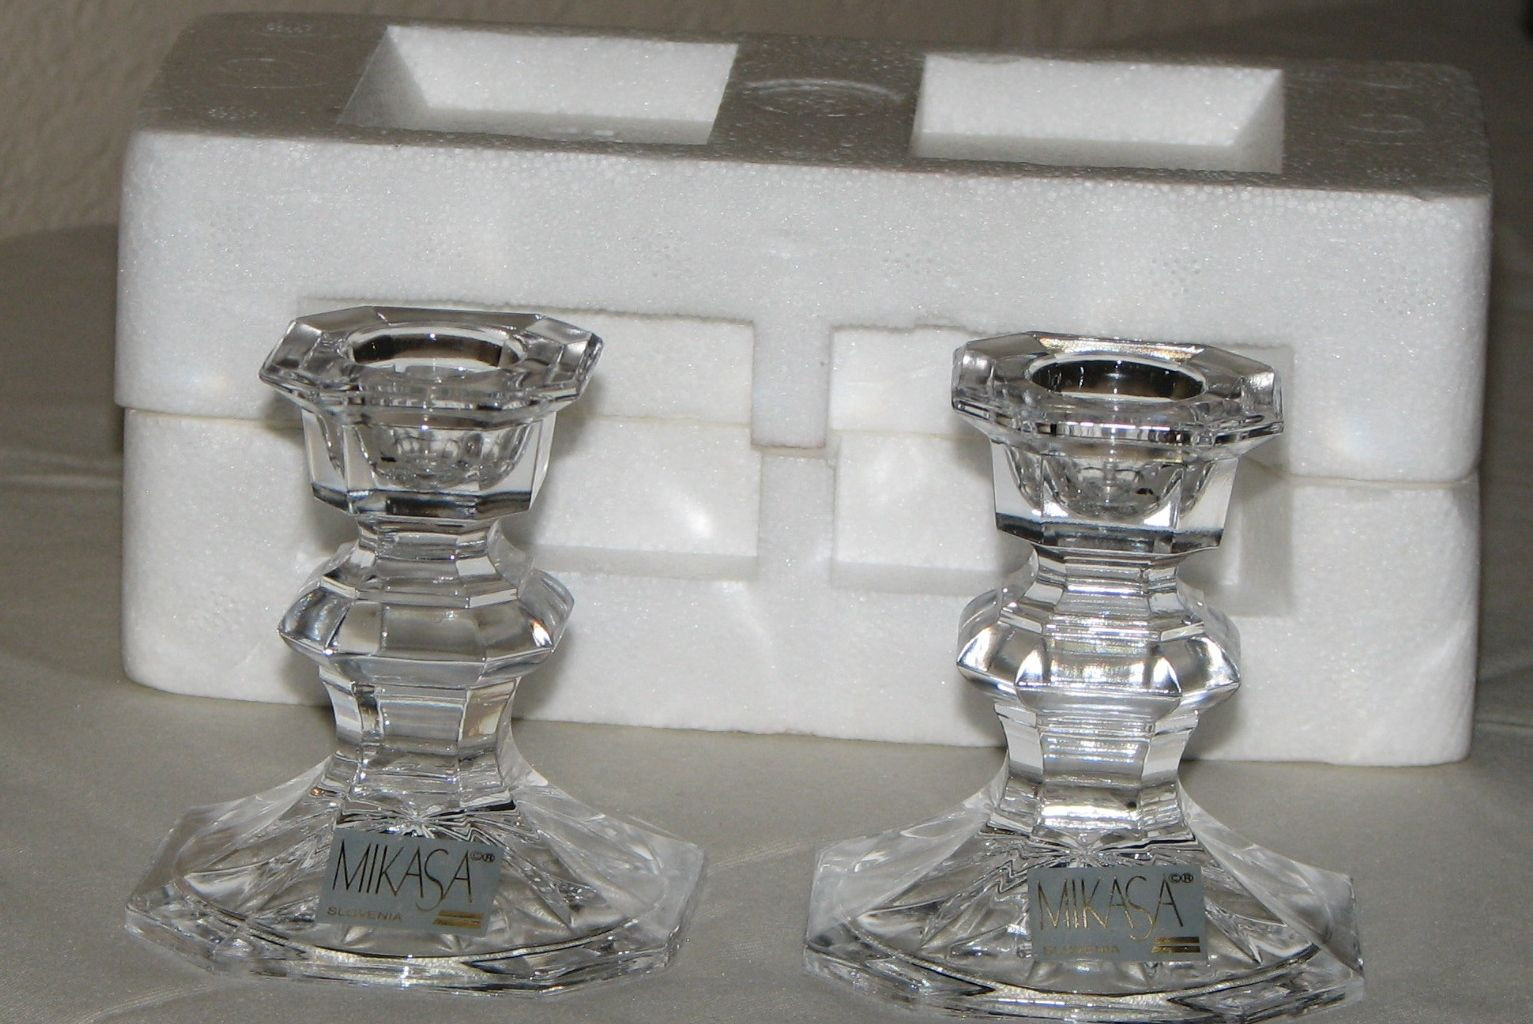 princess house crystal vase of mikasa crystal candle holders 14 99 and 5 99 fast shipping crystal regarding mikasa crystal candle holders 14 99 and 5 99 fast shipping